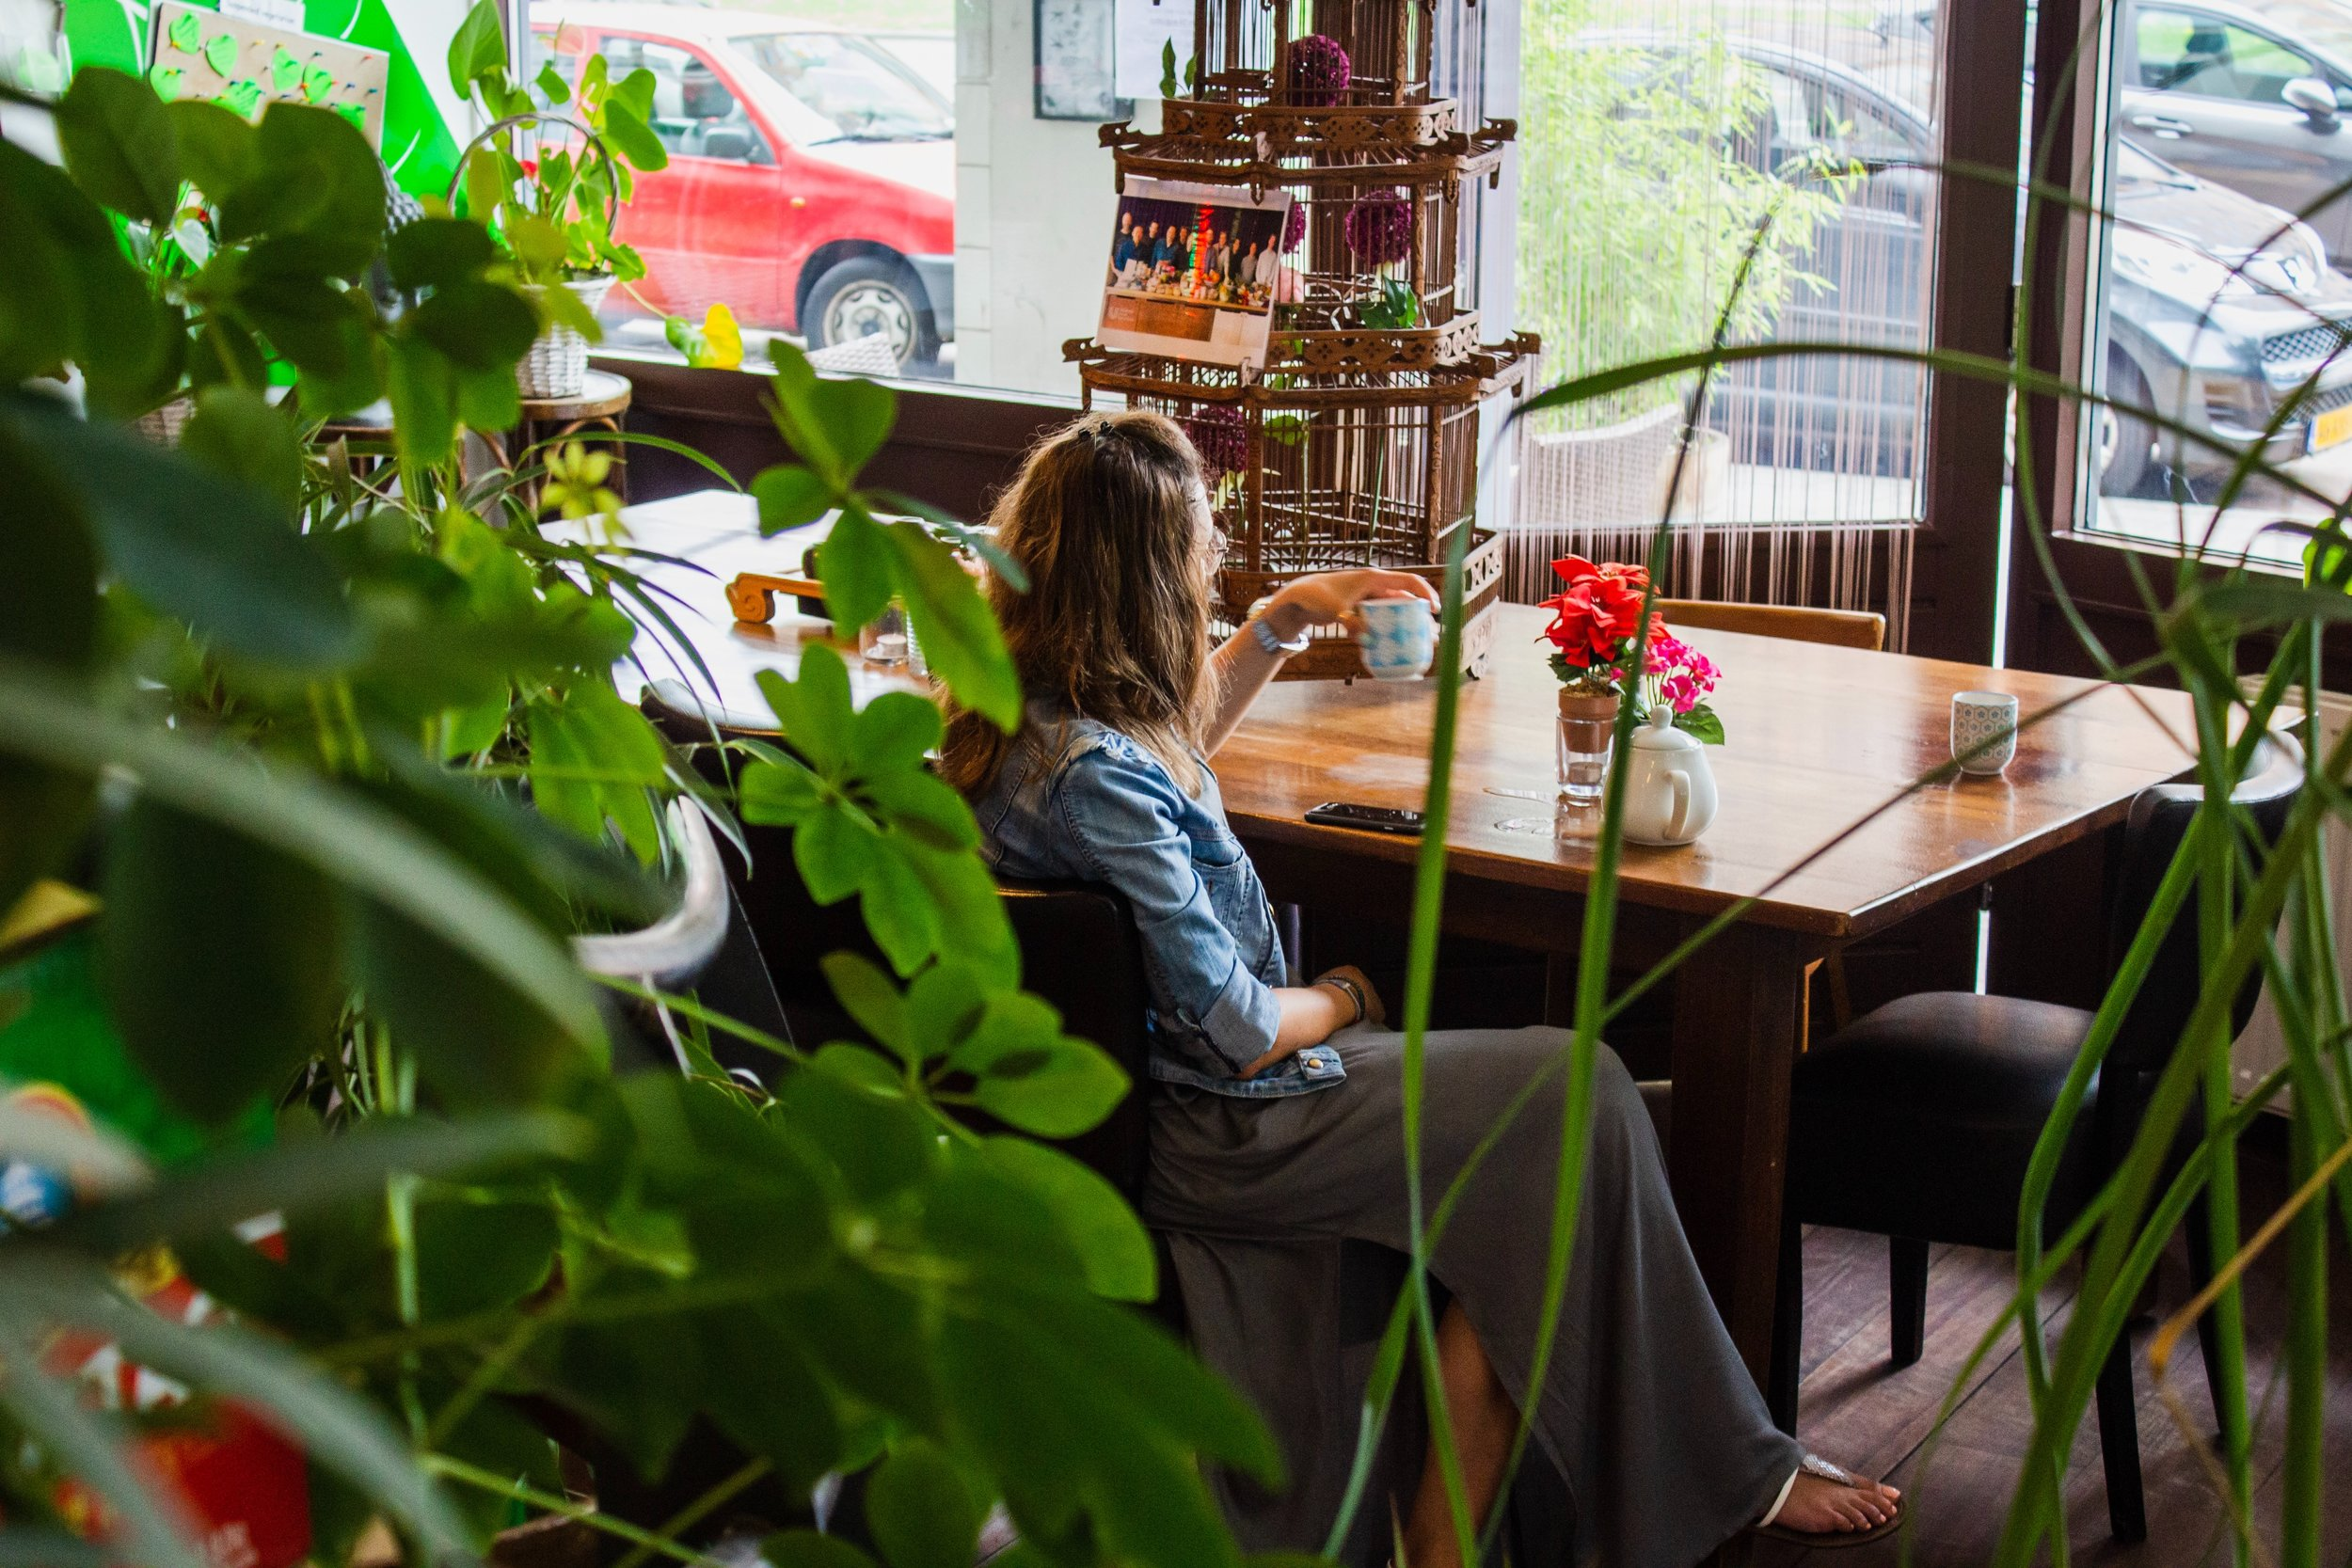 women sitting at a table behind plants, drinking a cup of tea with flowers on the table while thinking anxiously about the future